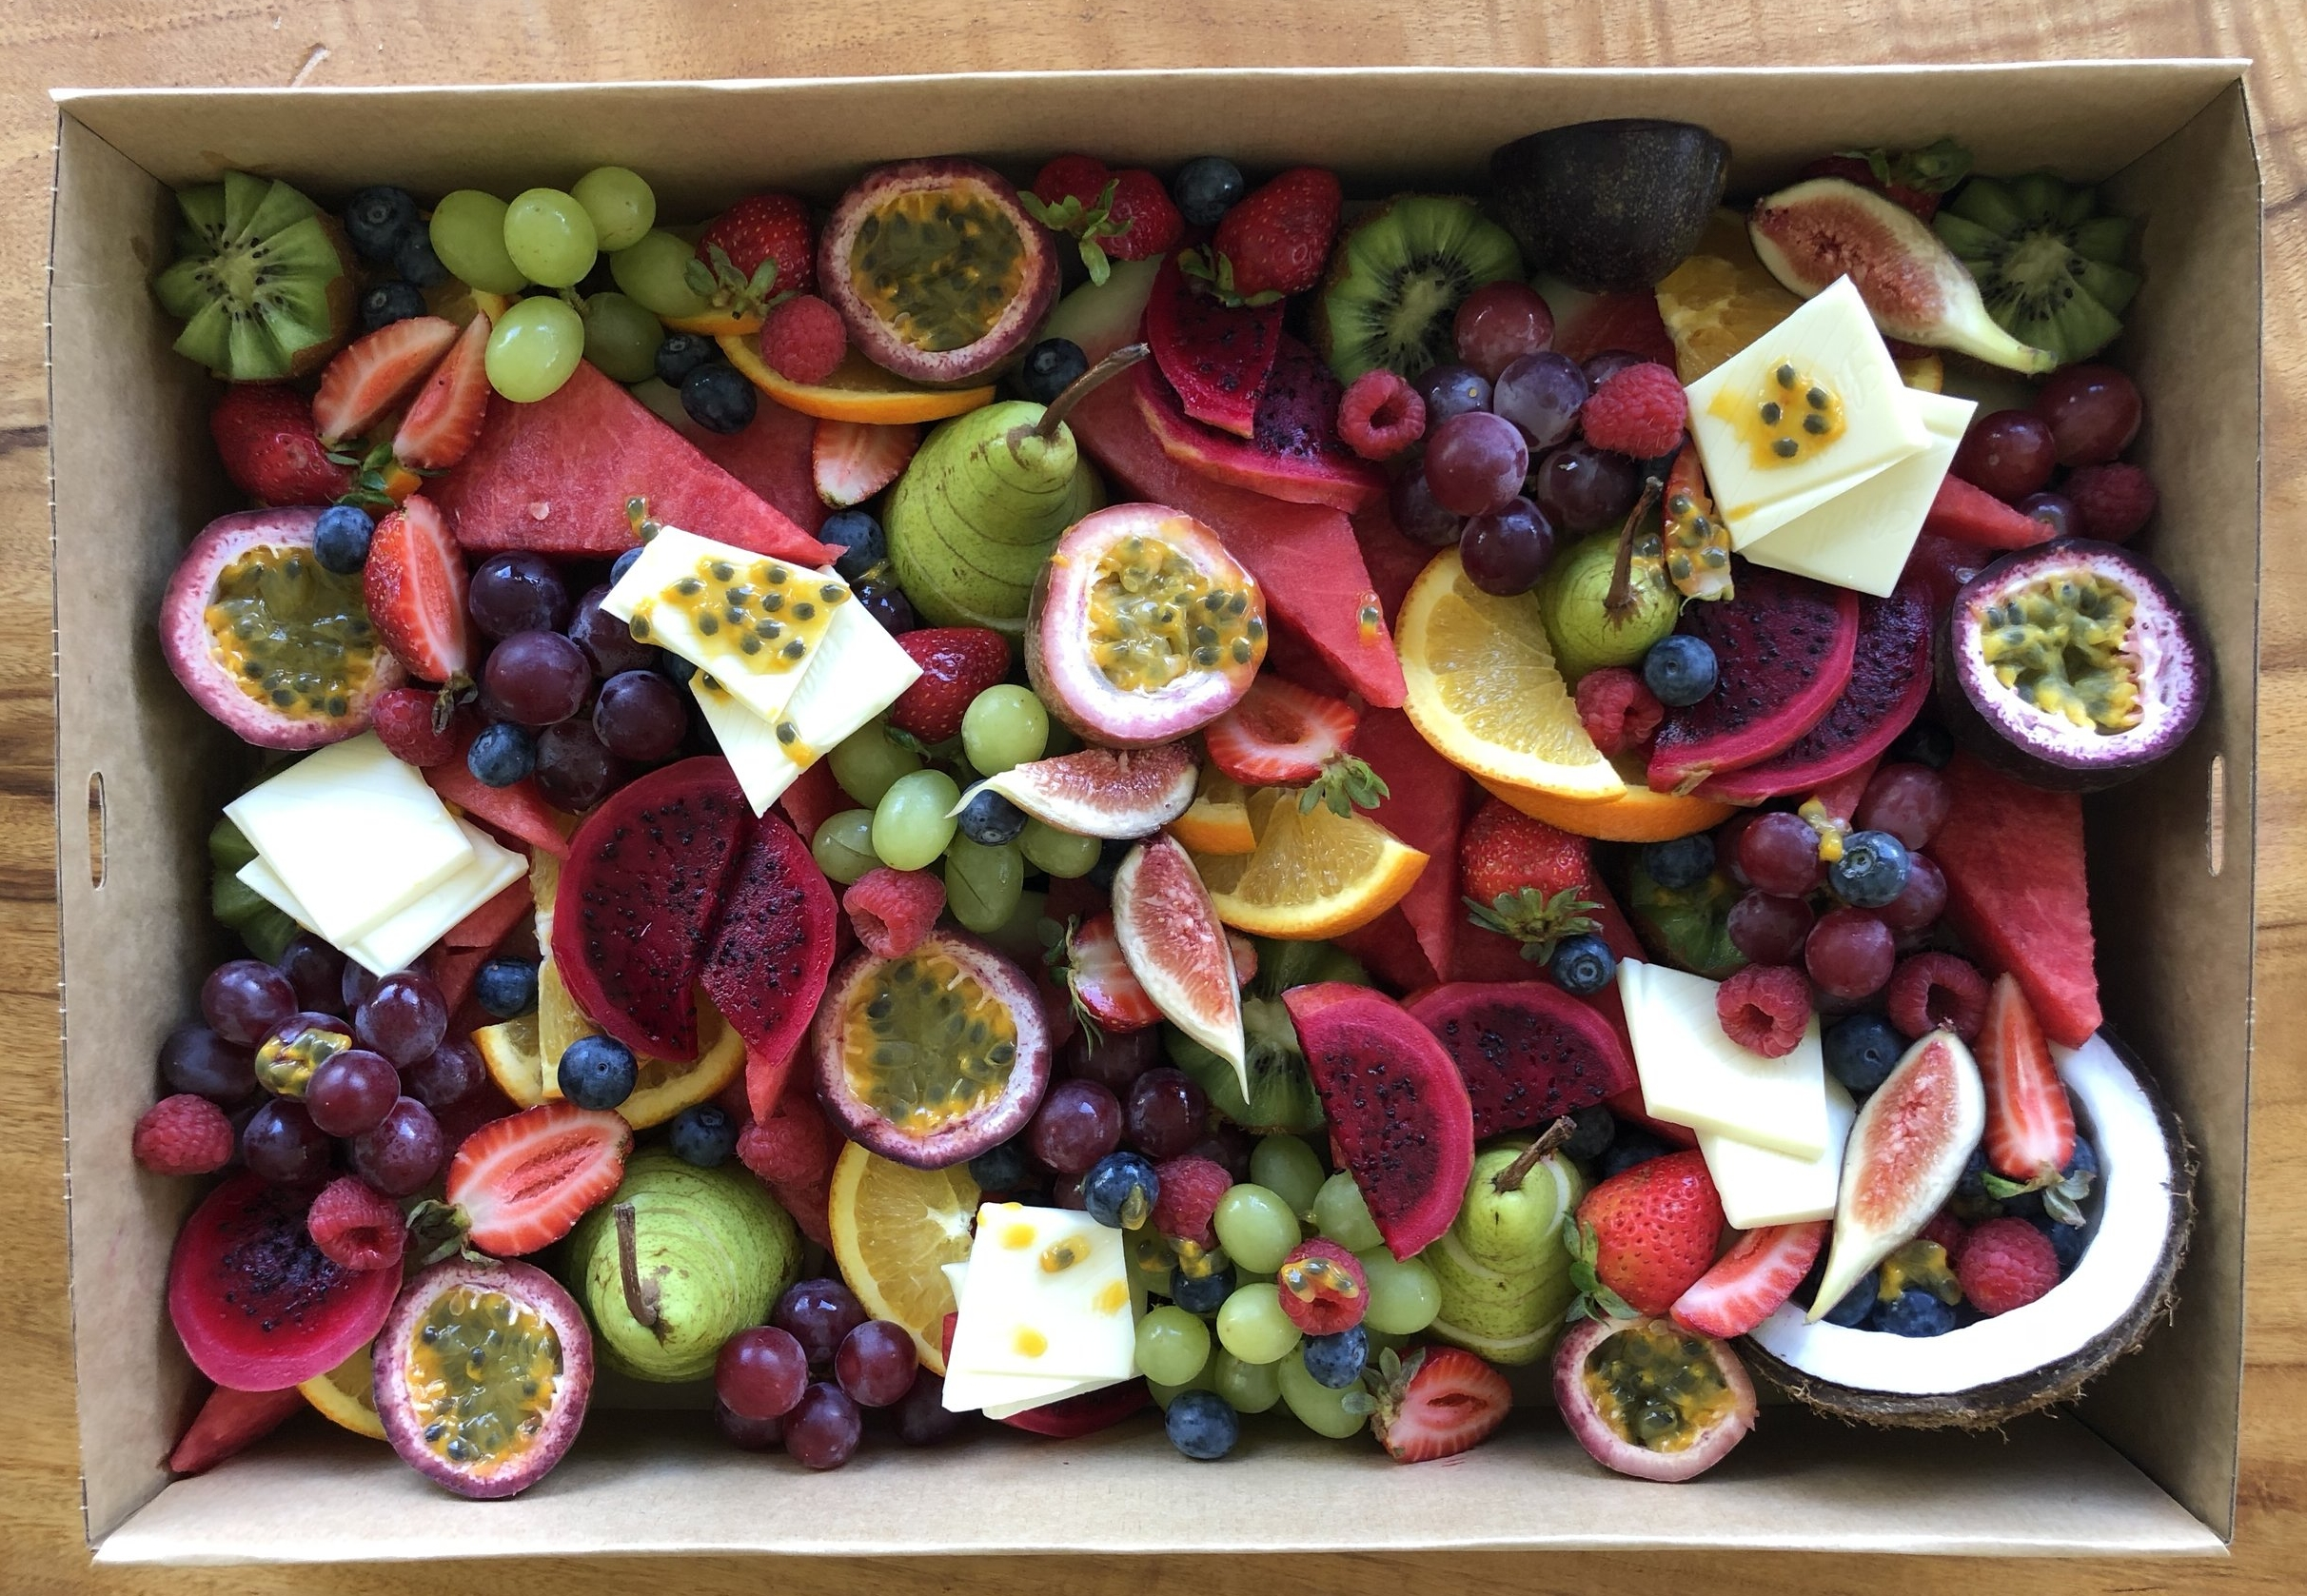 LARGE FRUIT BOX$90.00 - for up to 8 people